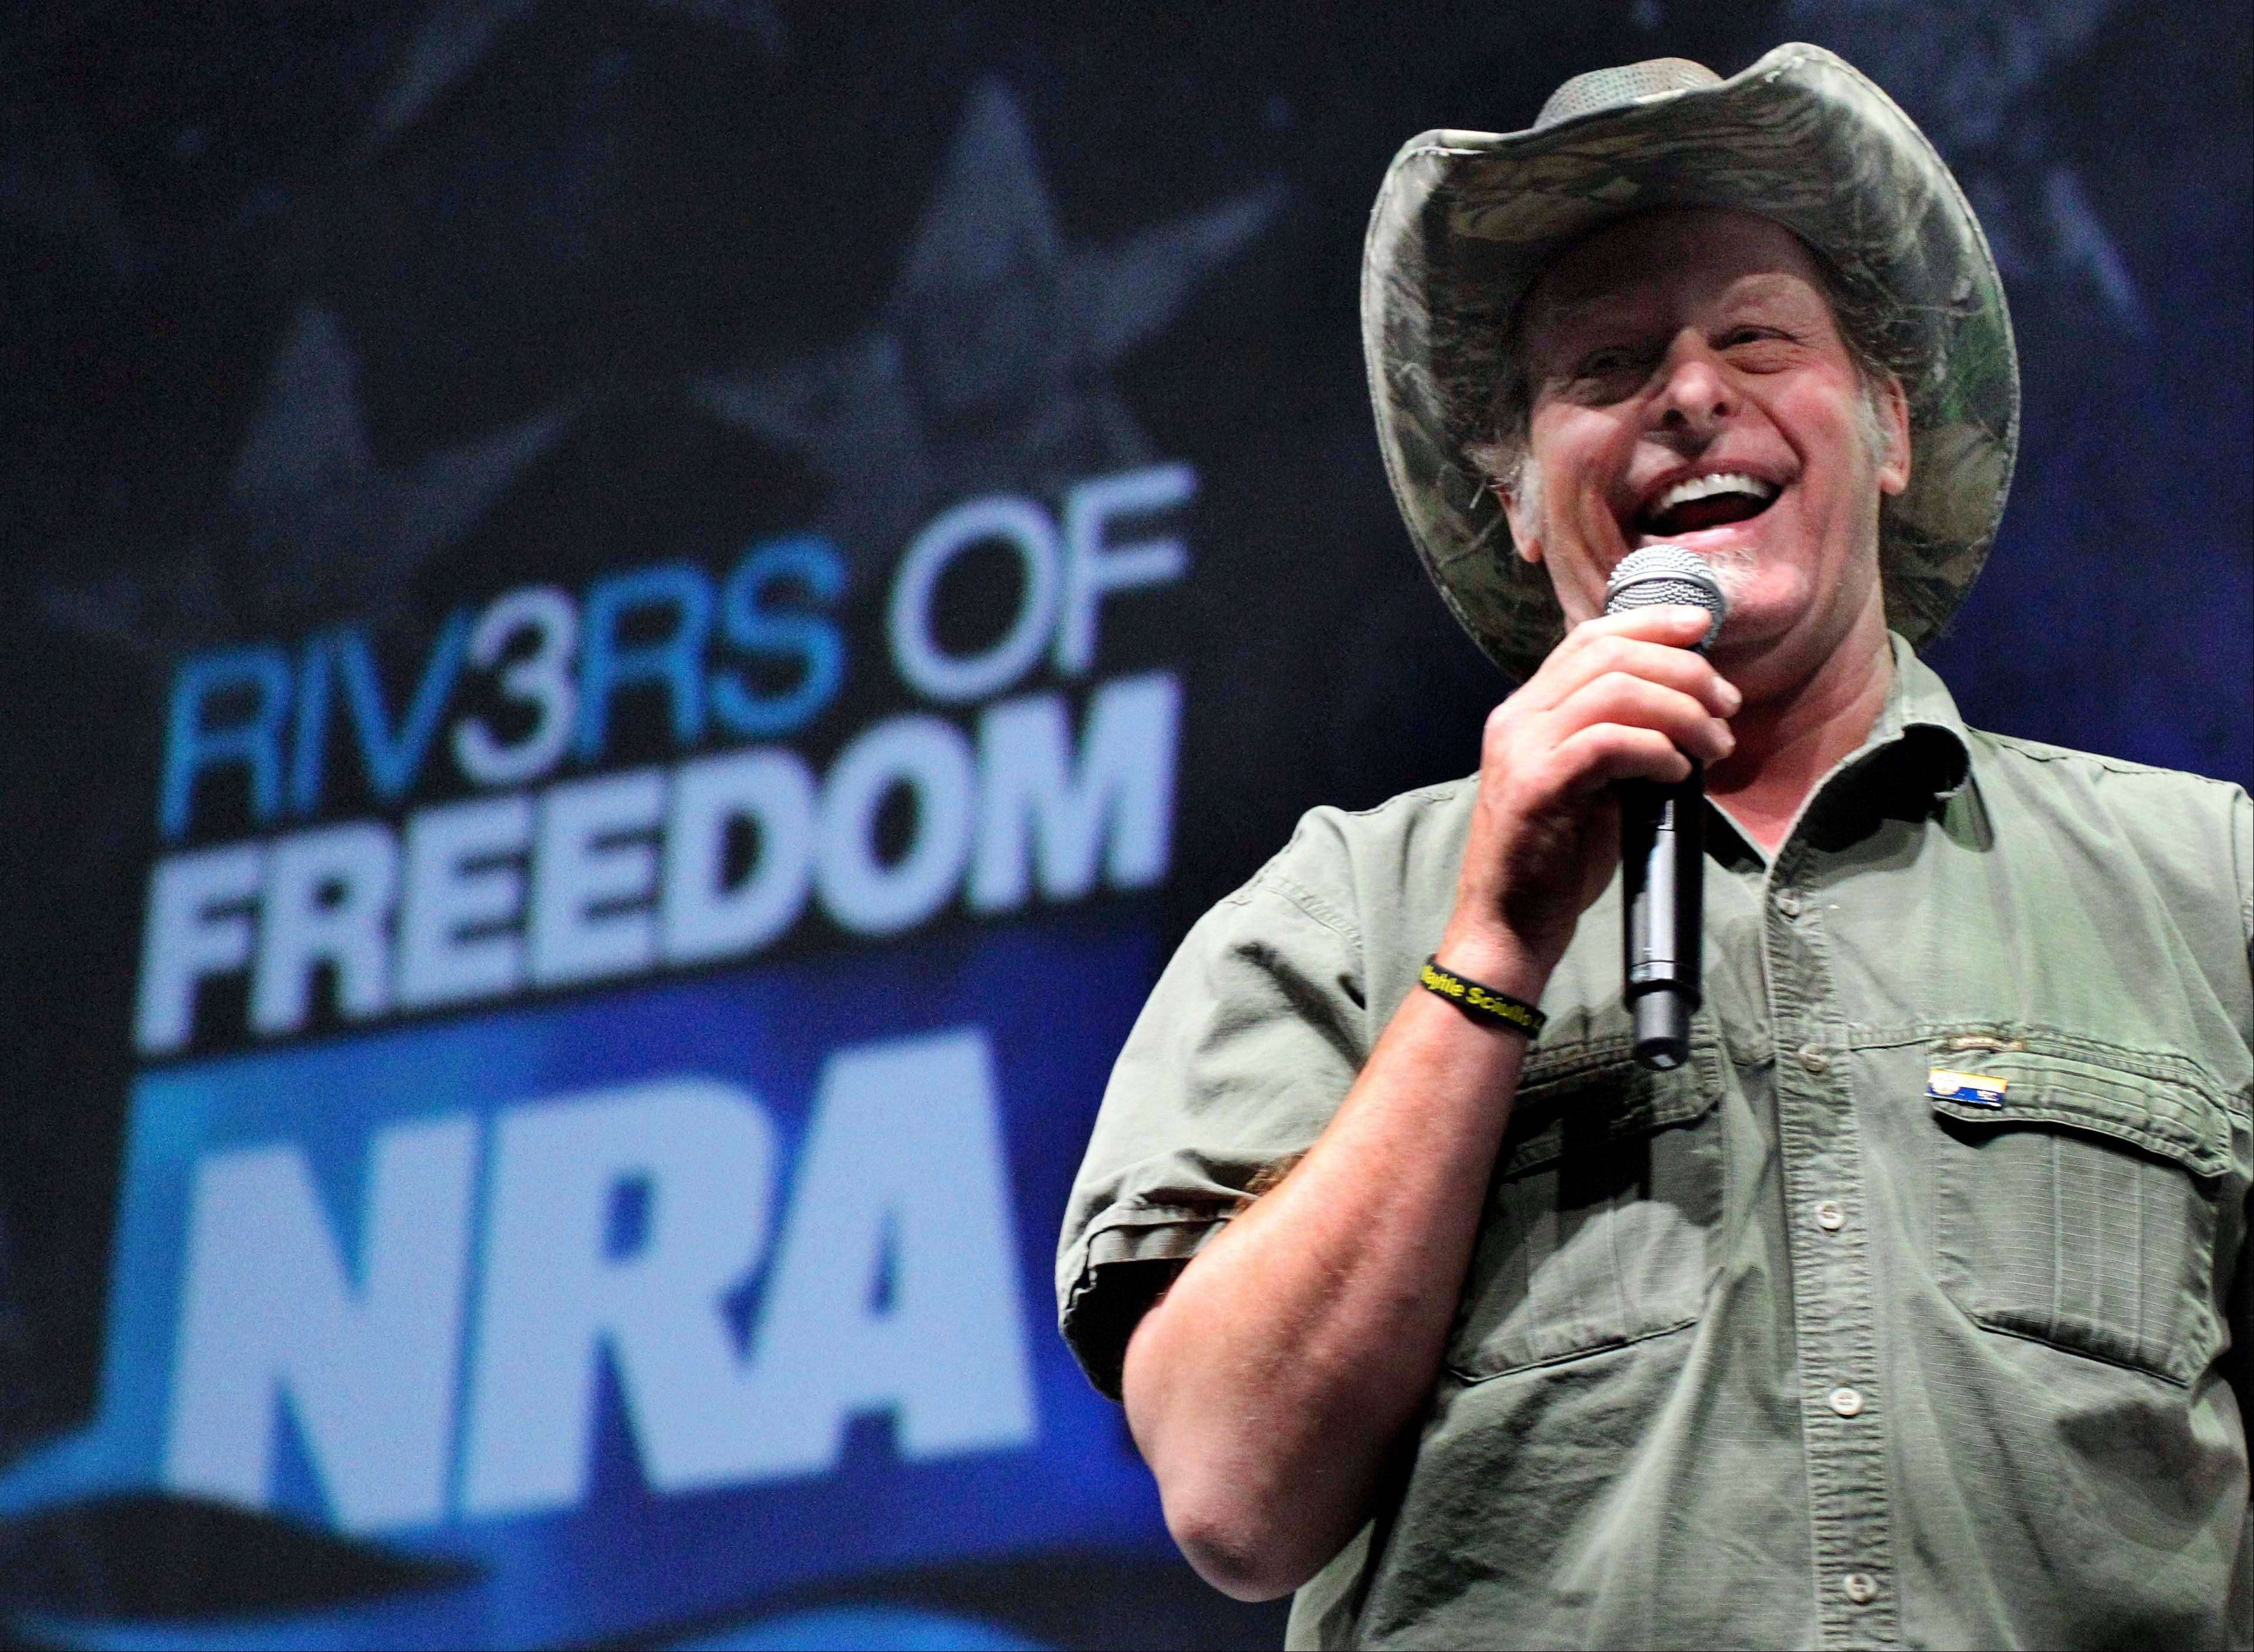 Musician and gun rights activist Ted Nugent, who has referred to President Barack Obama�s administration as �evil, America-hating,� was invited to attend Tuesday�s State of the Union address by Rep. Steve Stockman, R-Texas.